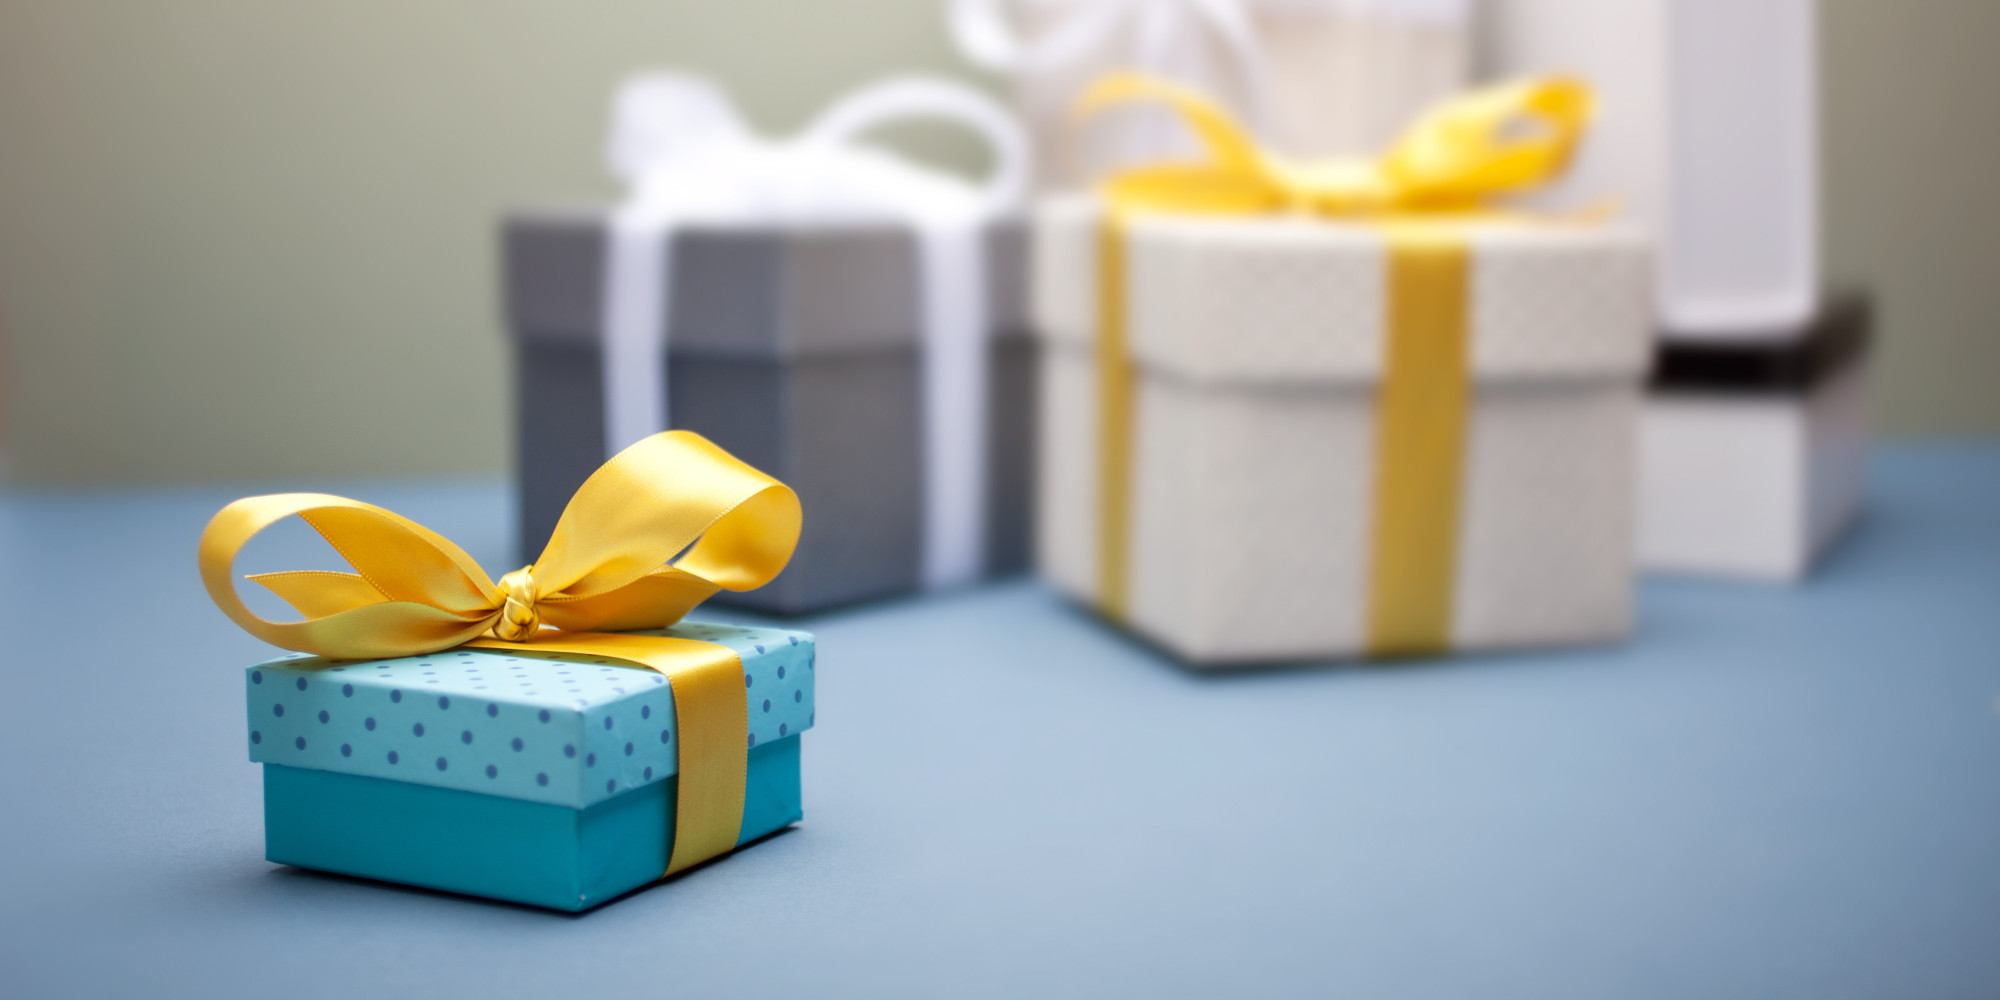 What Makes Tea Gift Boxes Good Choices For Corporate Gifting Purposes?